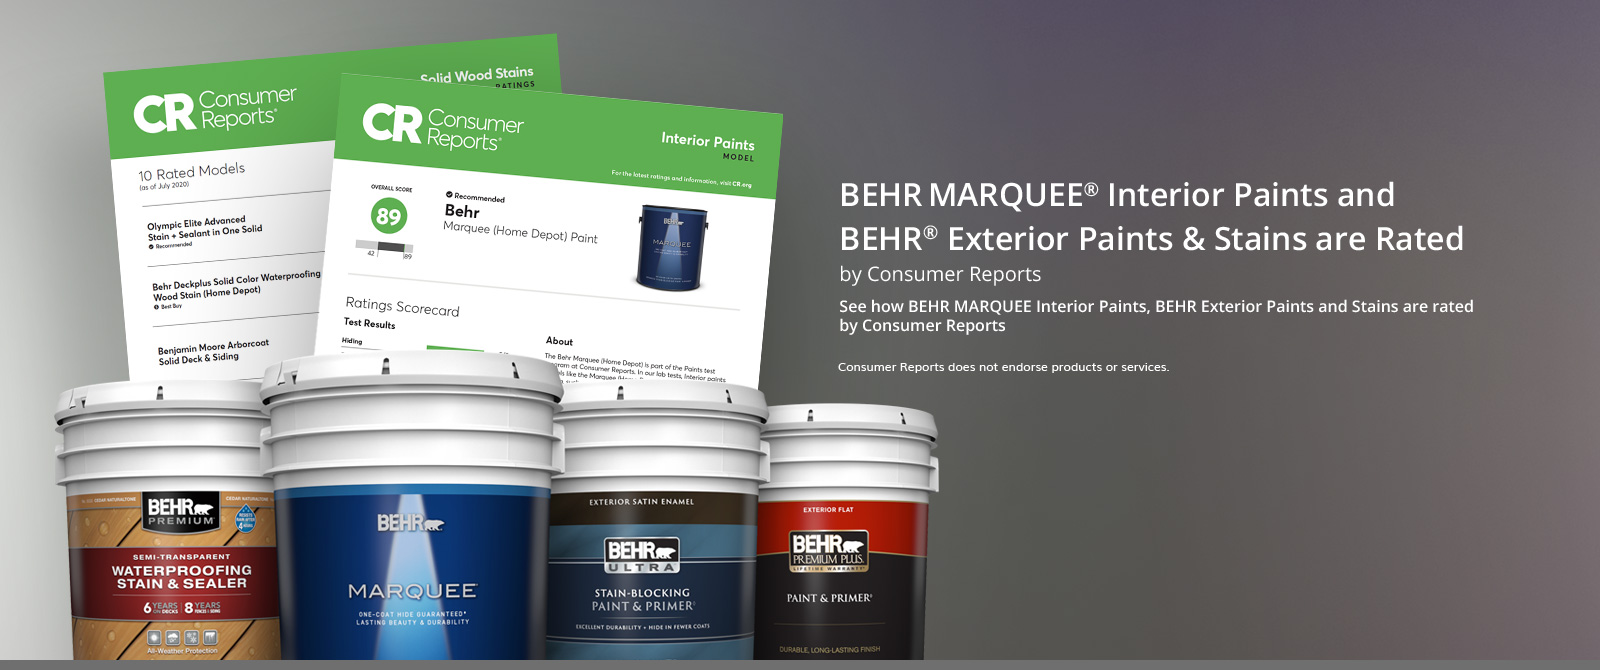 BEHR Paints & Stains are Rated by Consumer Reports.